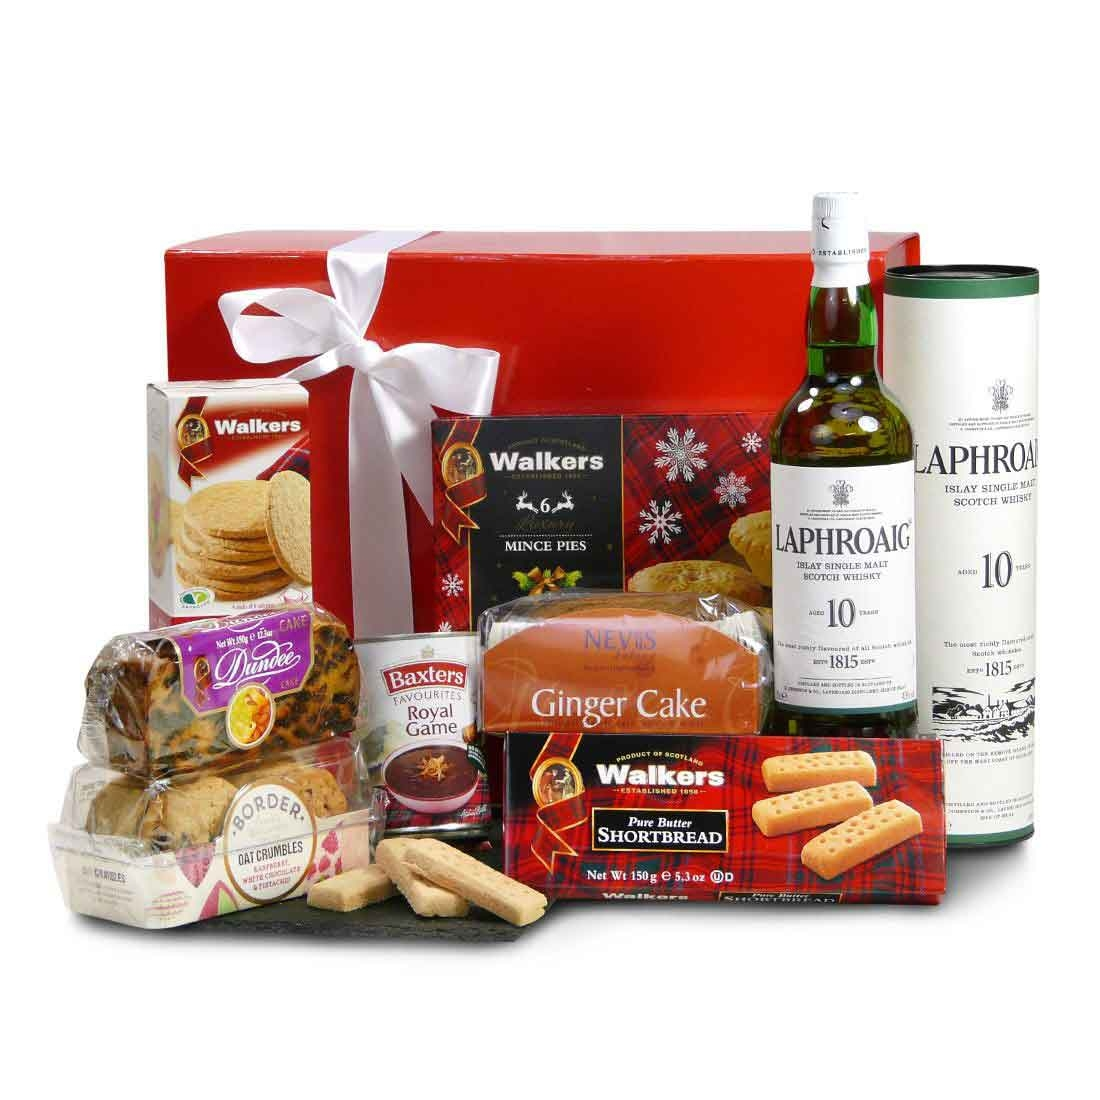 Whisky Hampers